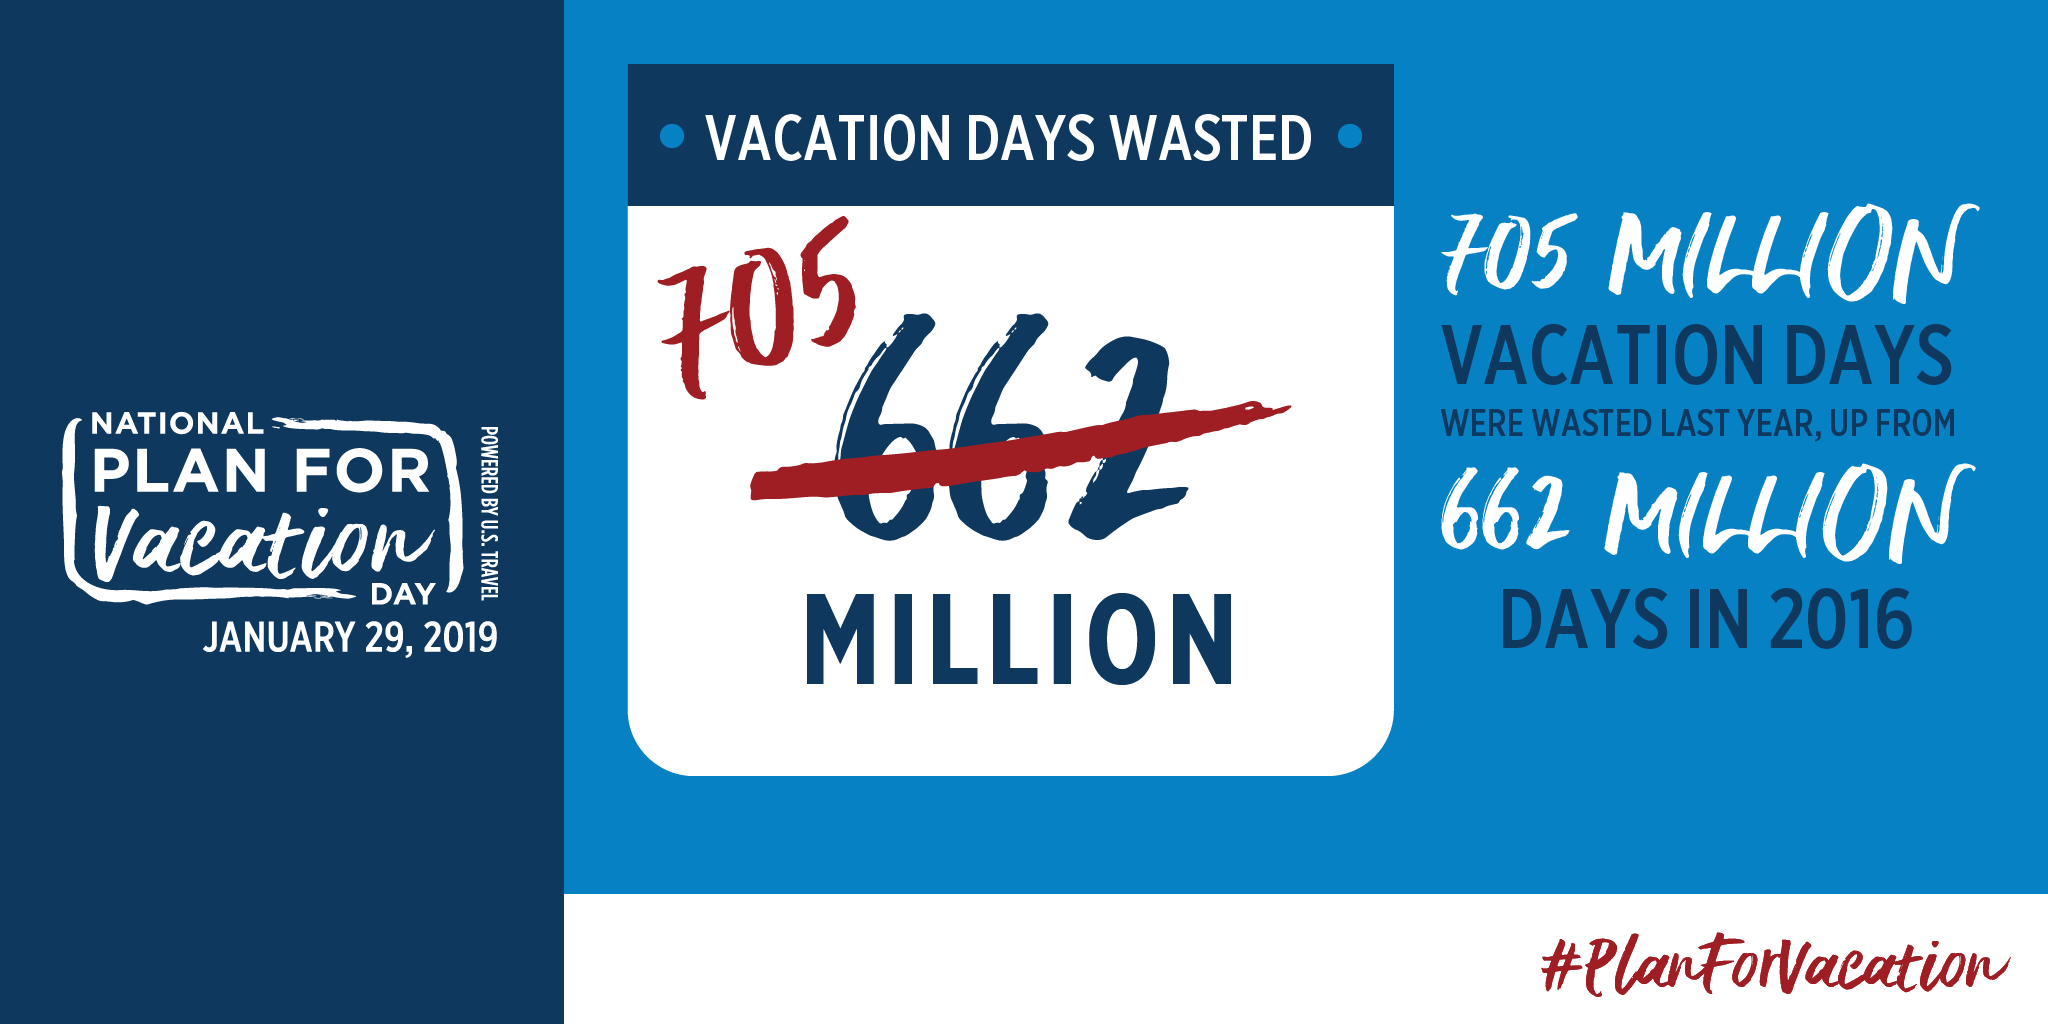 705 Million Vacation Days Were Wasted Last Year